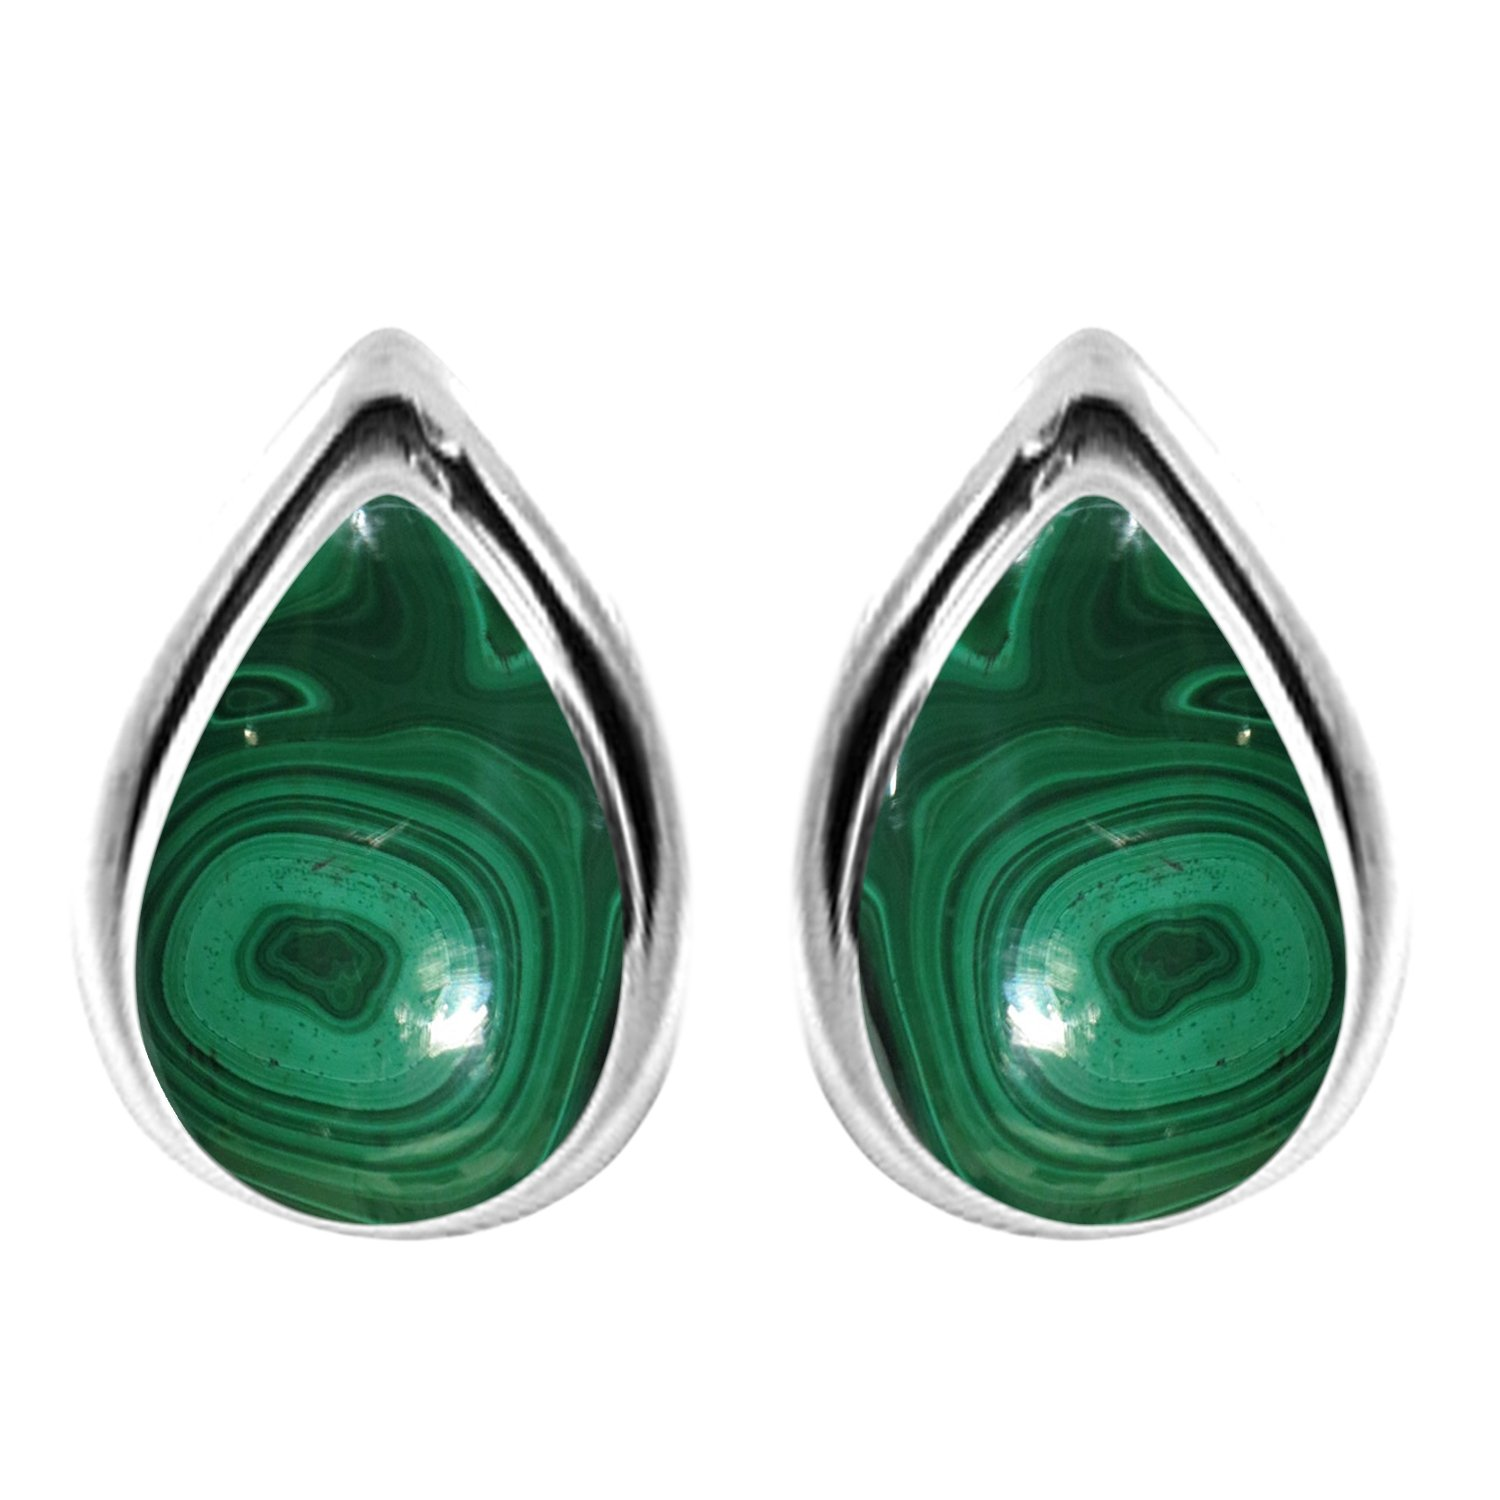 3.10ctw, 6x9mm Pear Genuine Malachite & 925 Silver Plated Stud Earrings